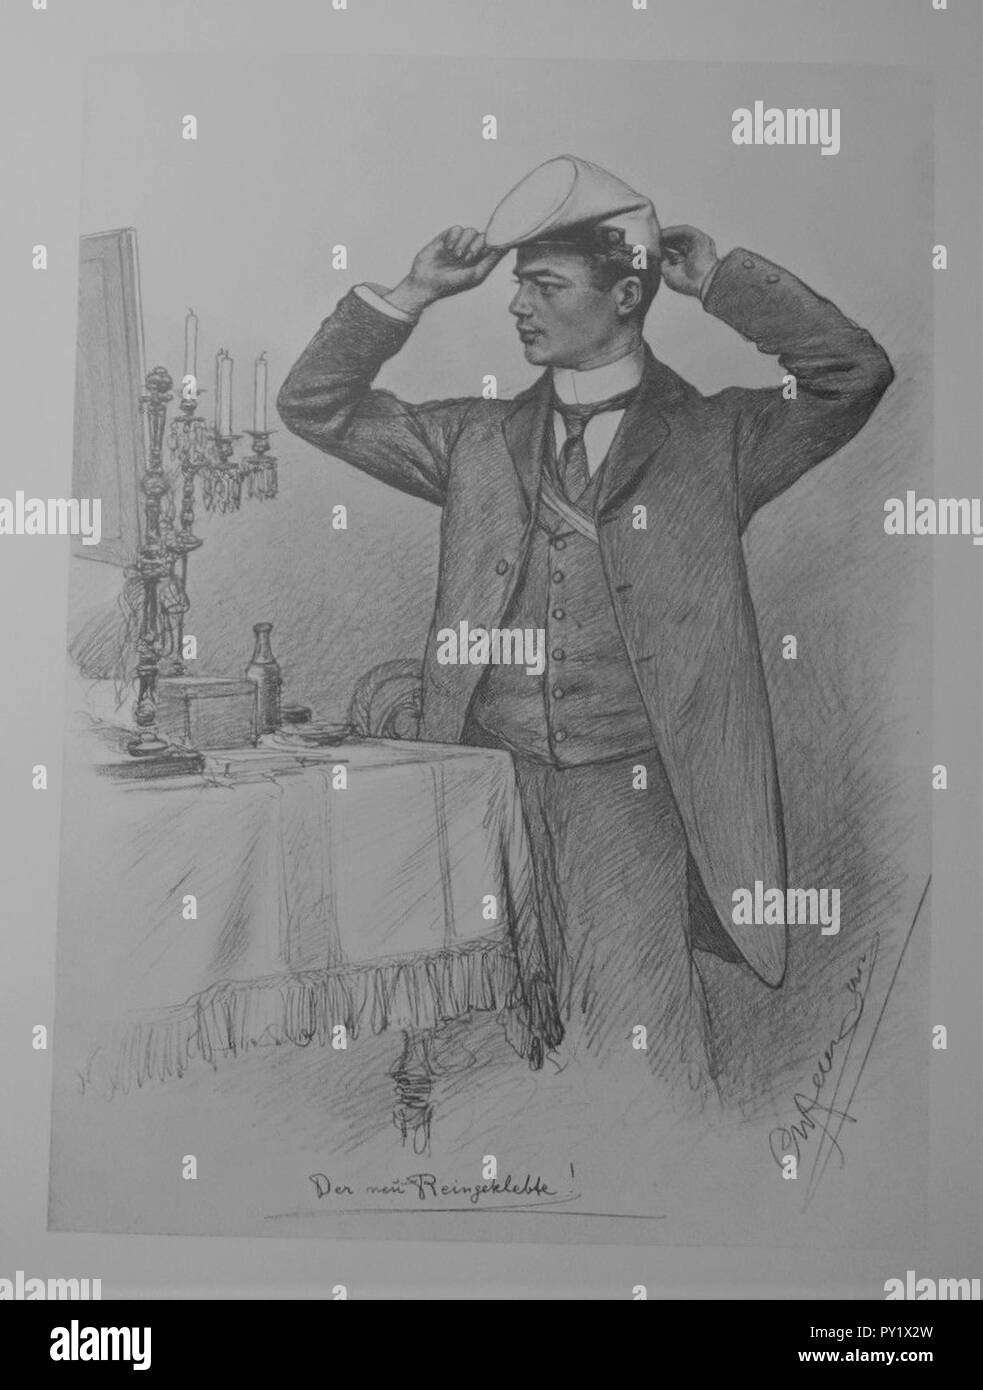 C. W. Allers - Junger Corpsstudent mit Stürmer, 1903. - Stock Image